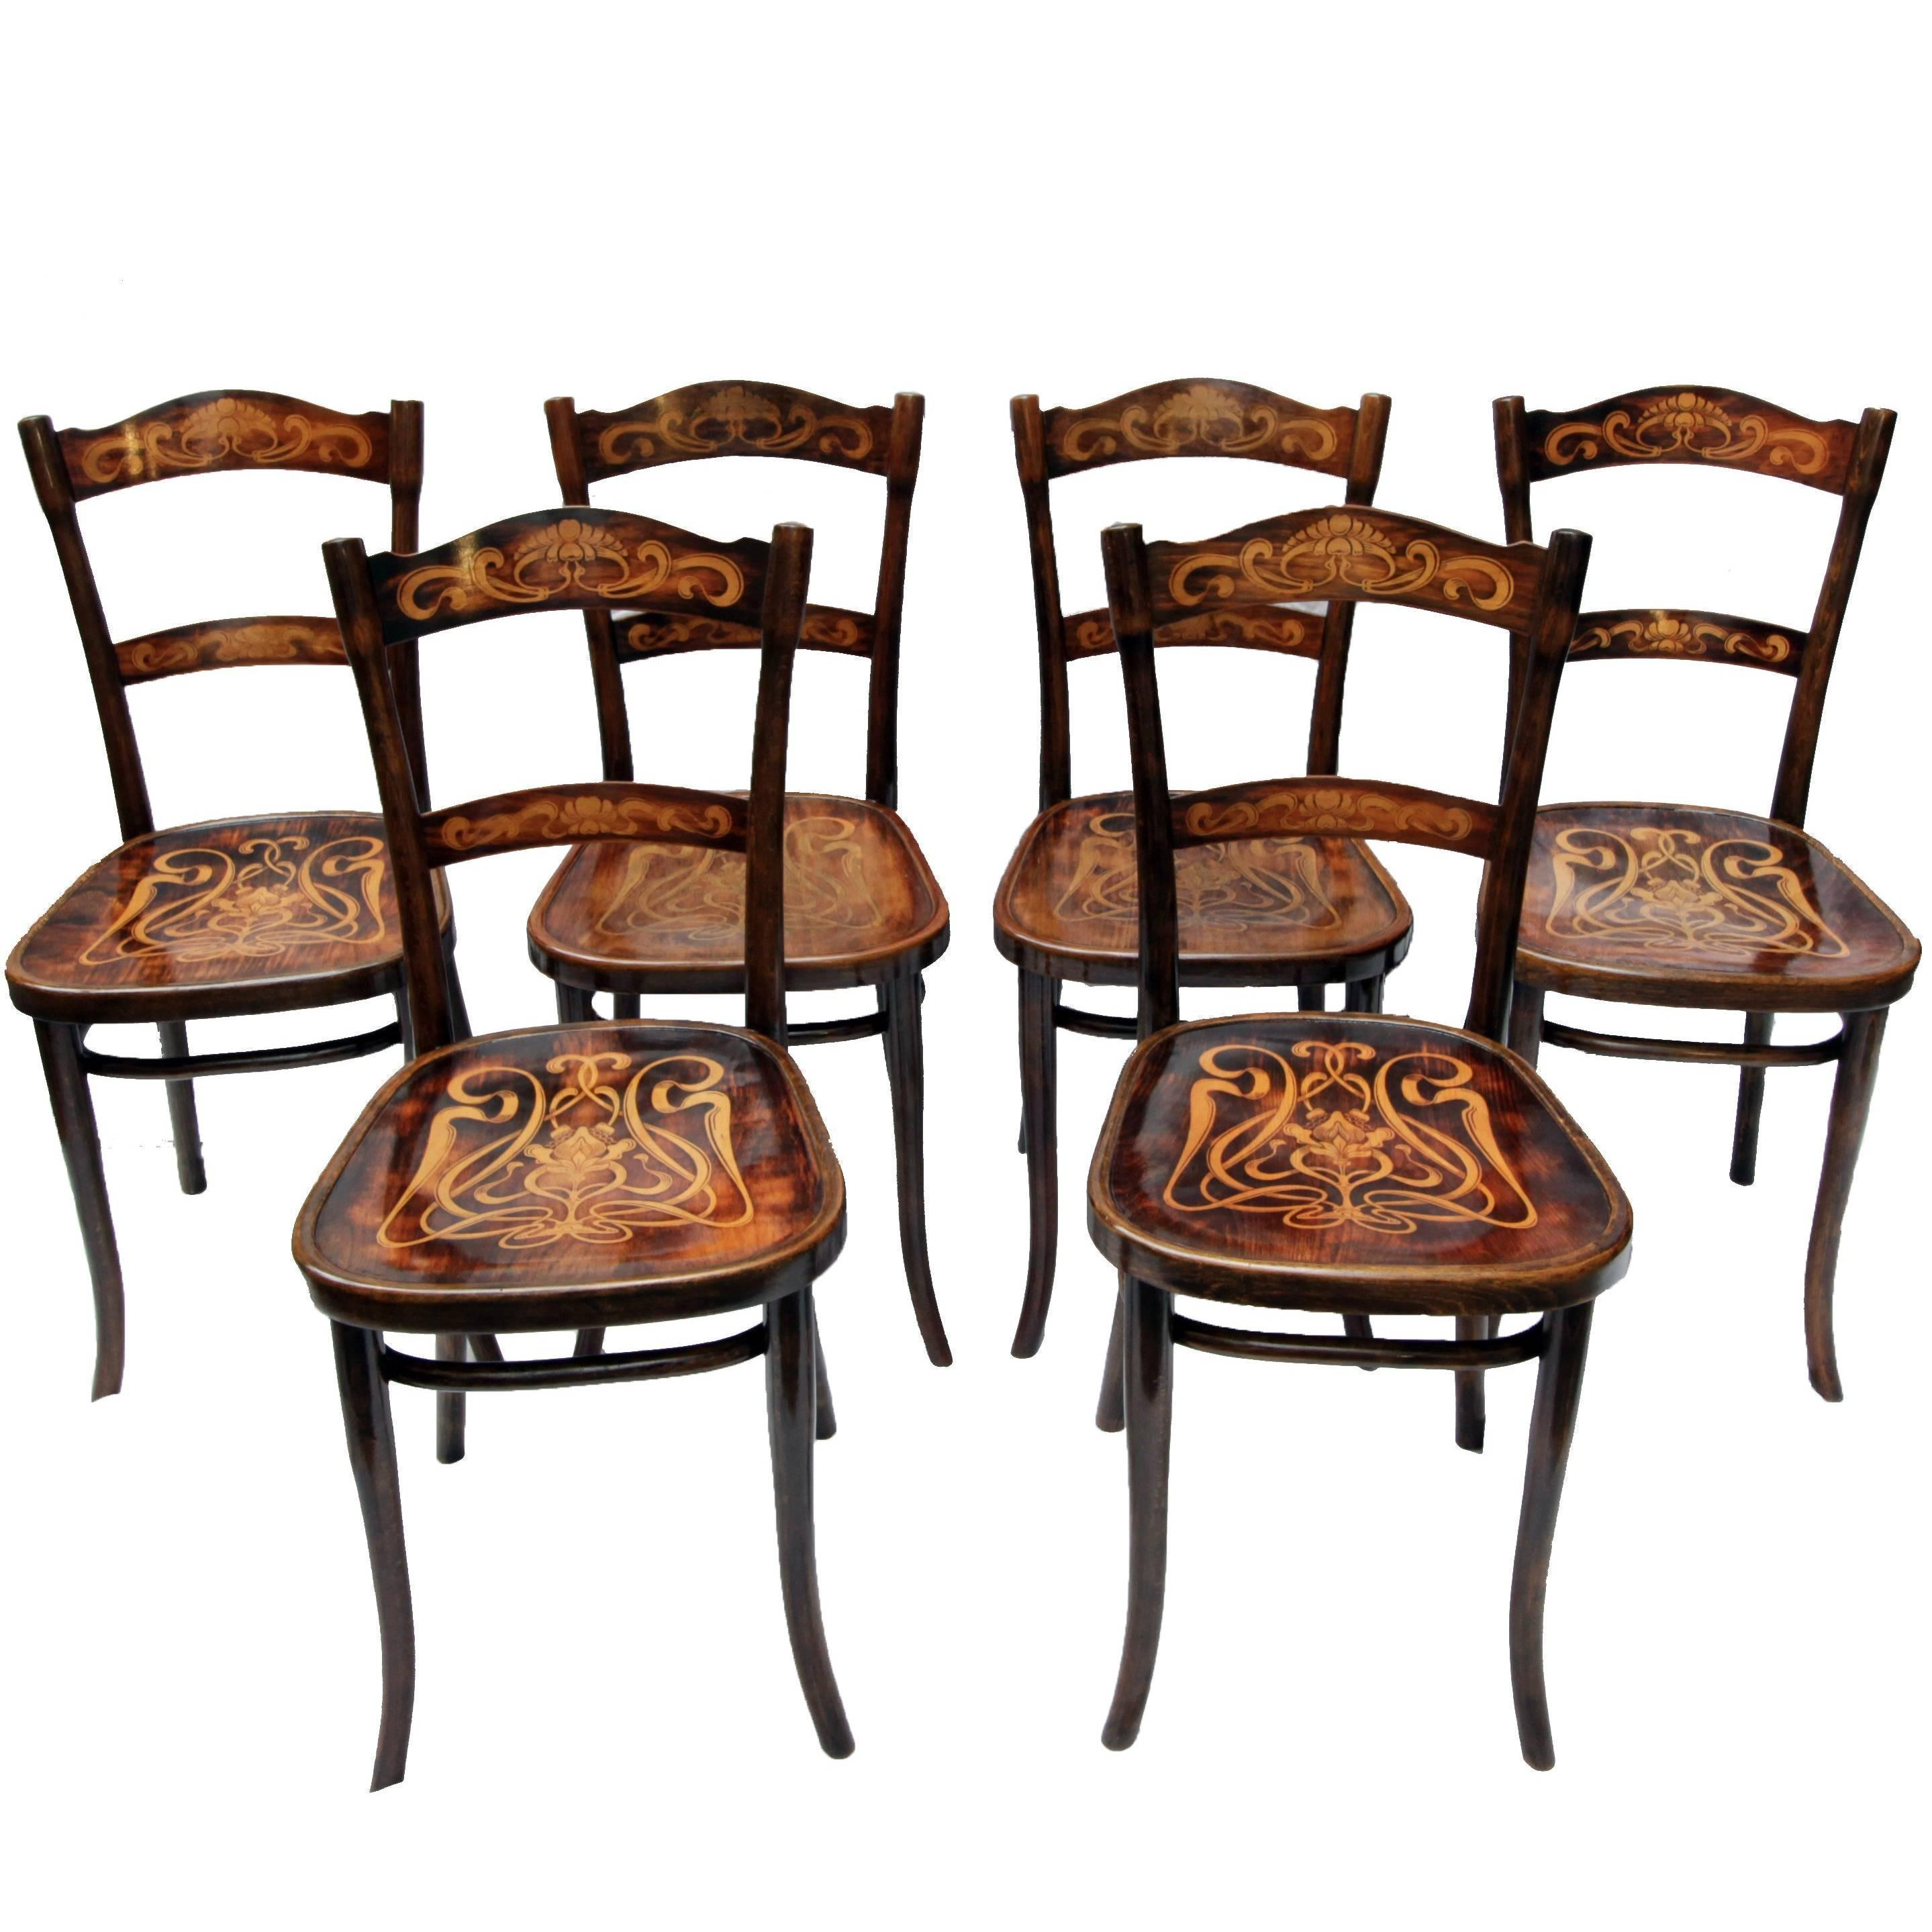 Art Nouveau Decorated Bentwood Dining Chairs From Thonet Set Of Six